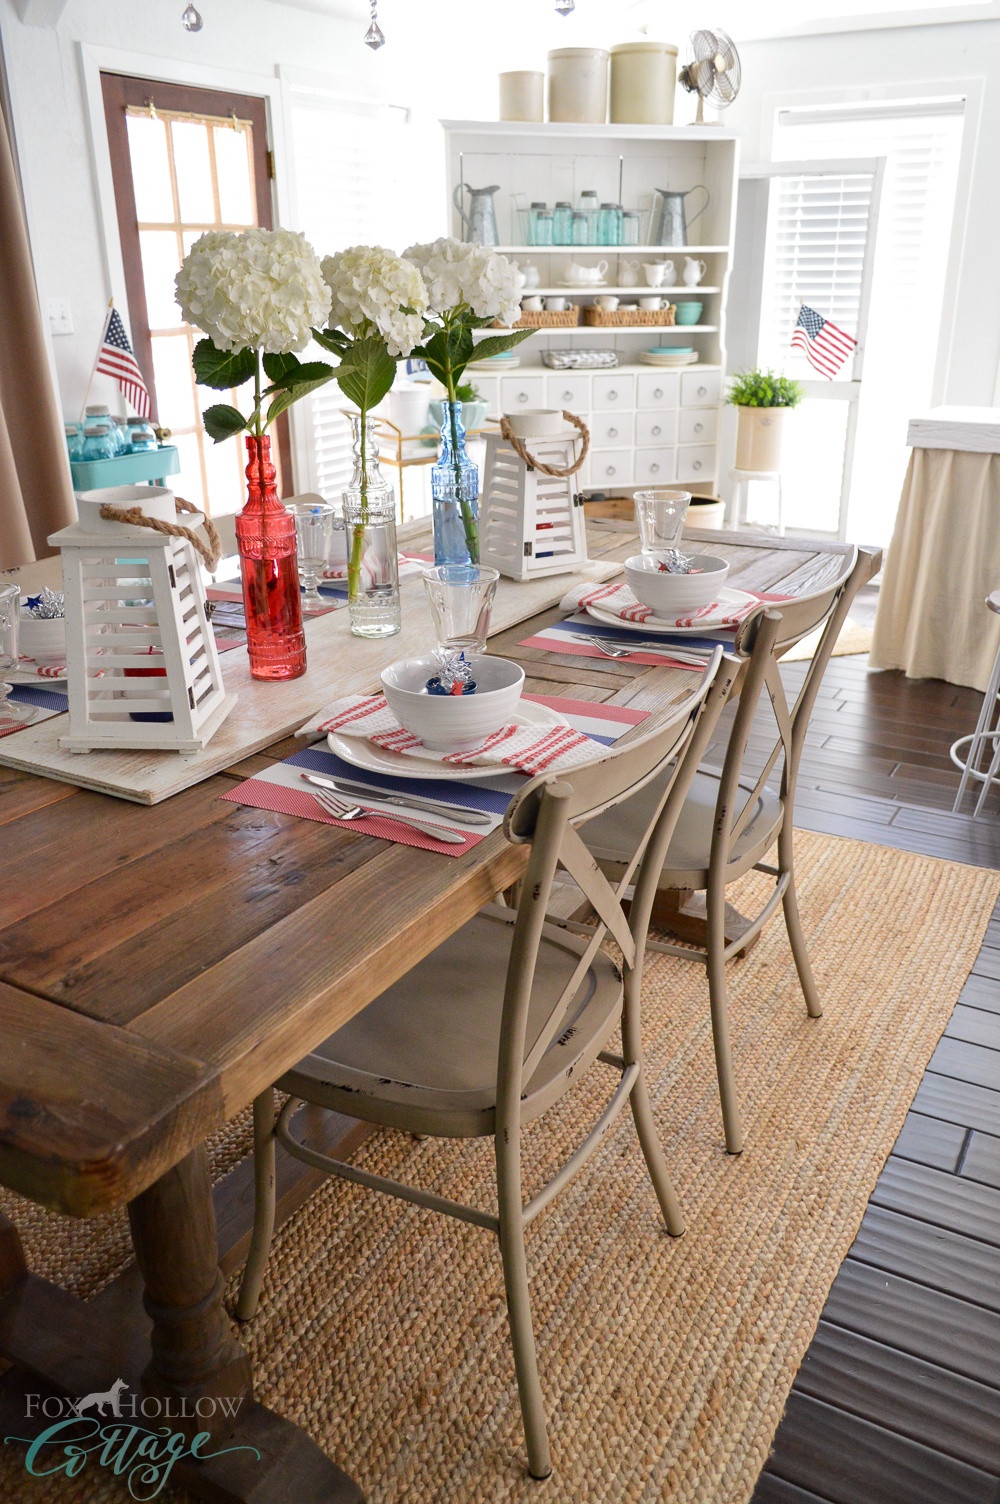 Vintage Cottage Farmhouse Decorating - July 4th Farm Table at foxhollowcottage.com